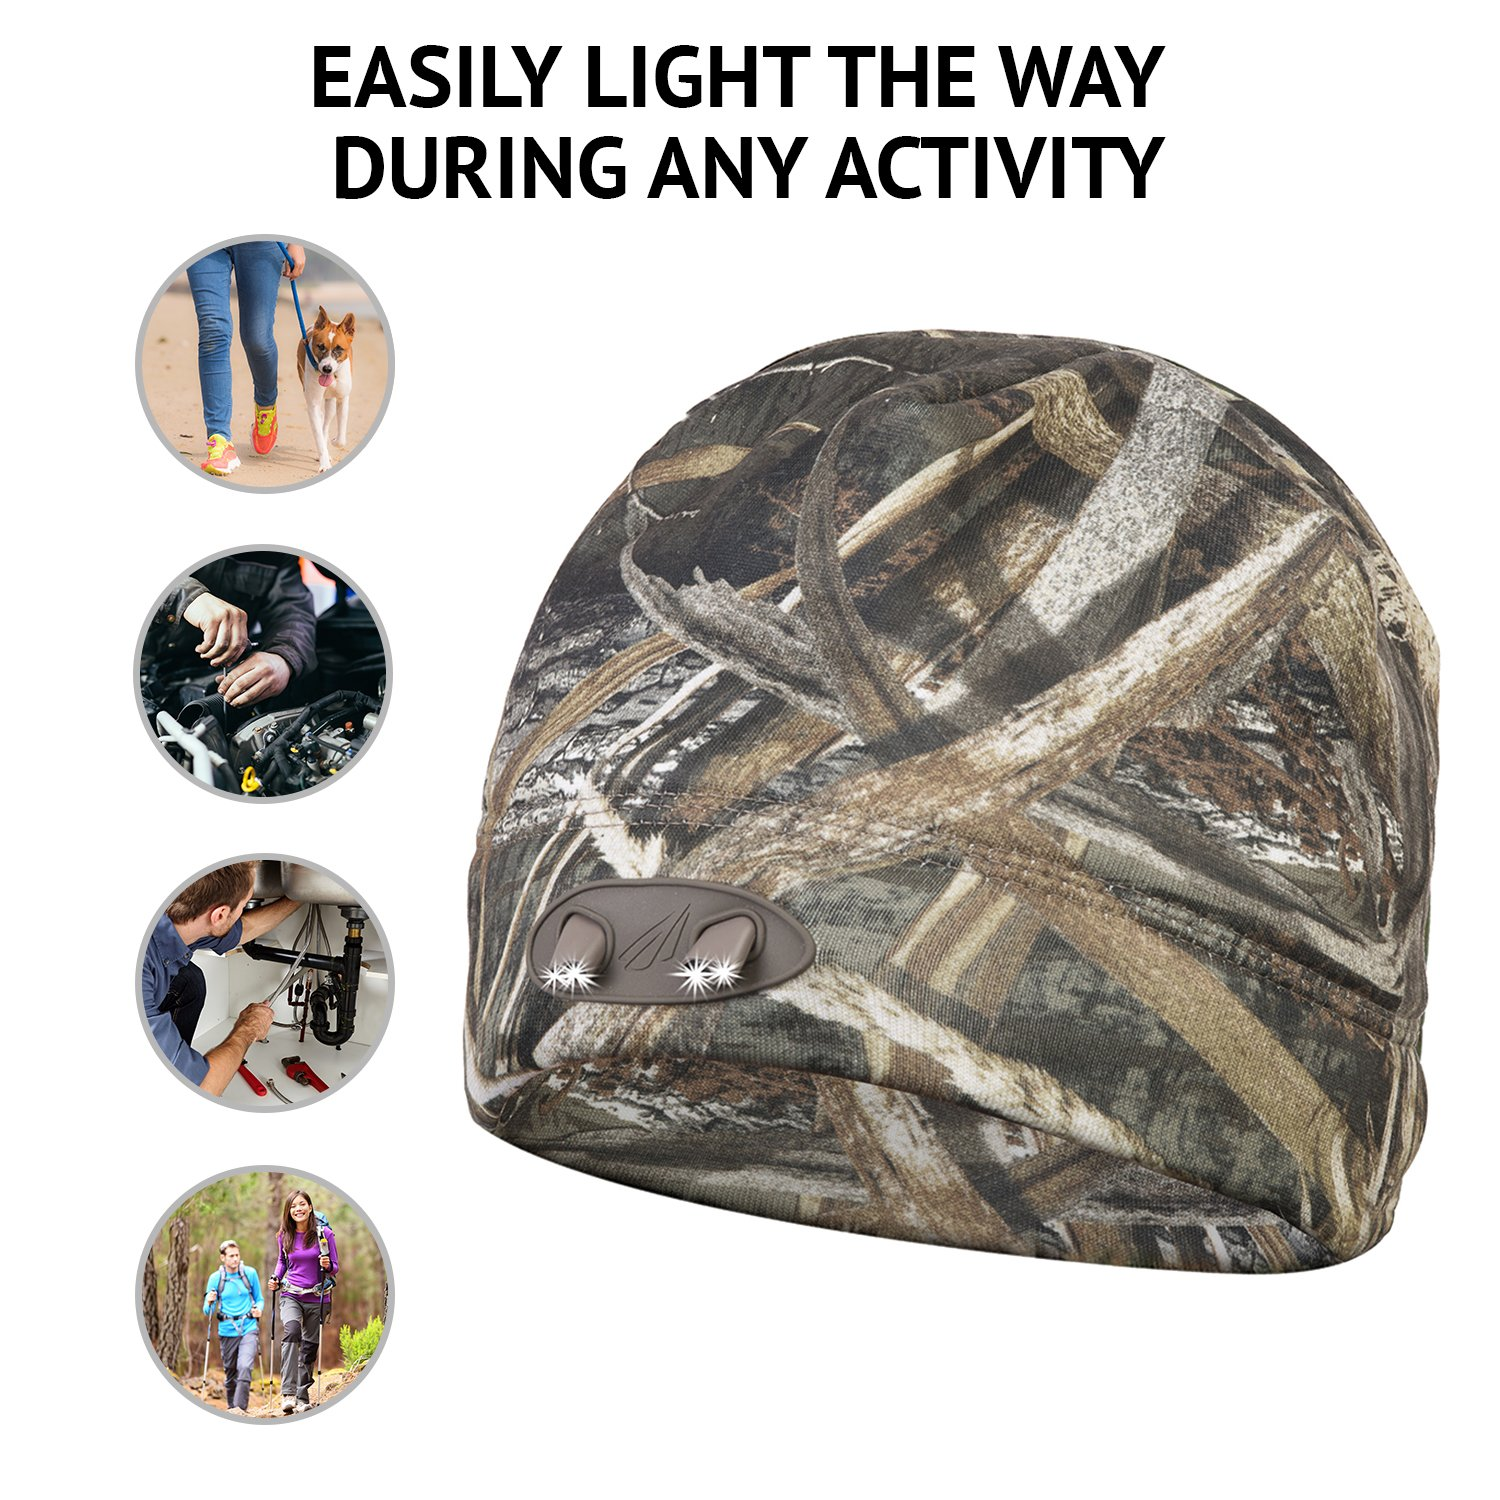 546f922300336 POWERCAP LED Beanie Cap 35  55 Ultra-Bright Hands Free LED Lighted Battery  Powered Headlamp Hat - Compression Fleece ...